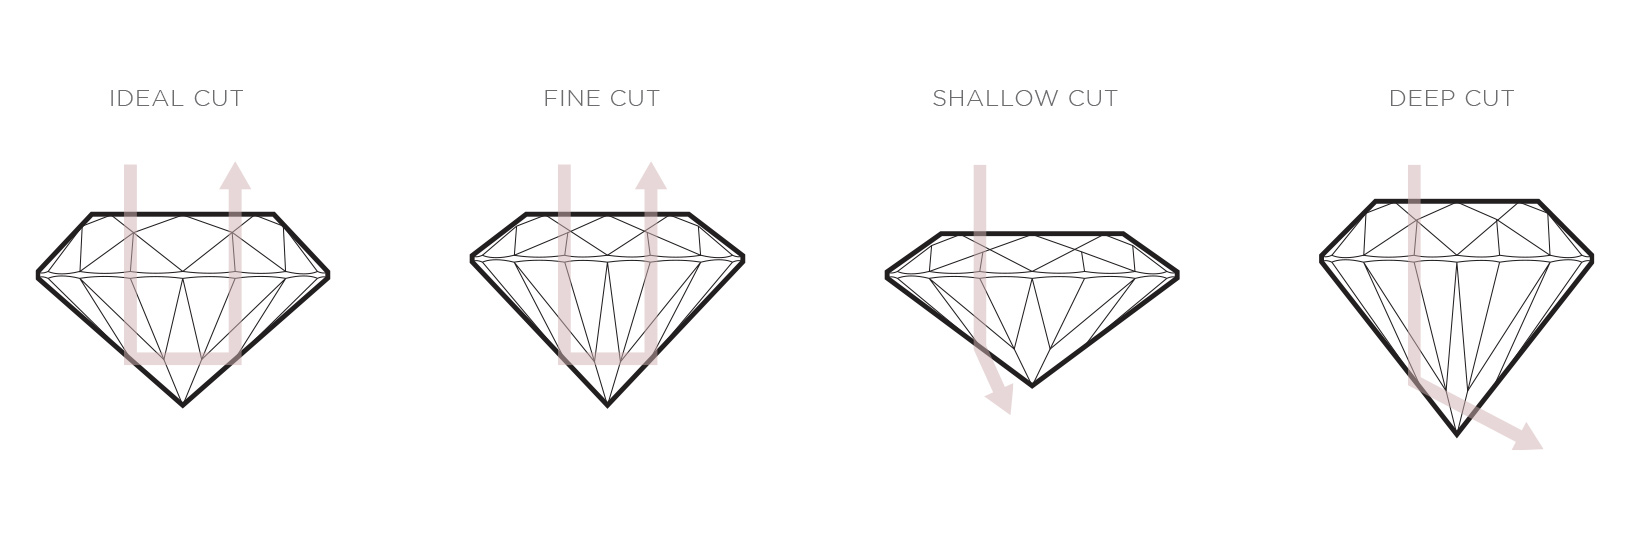 An infographic that shows different diamond cuts